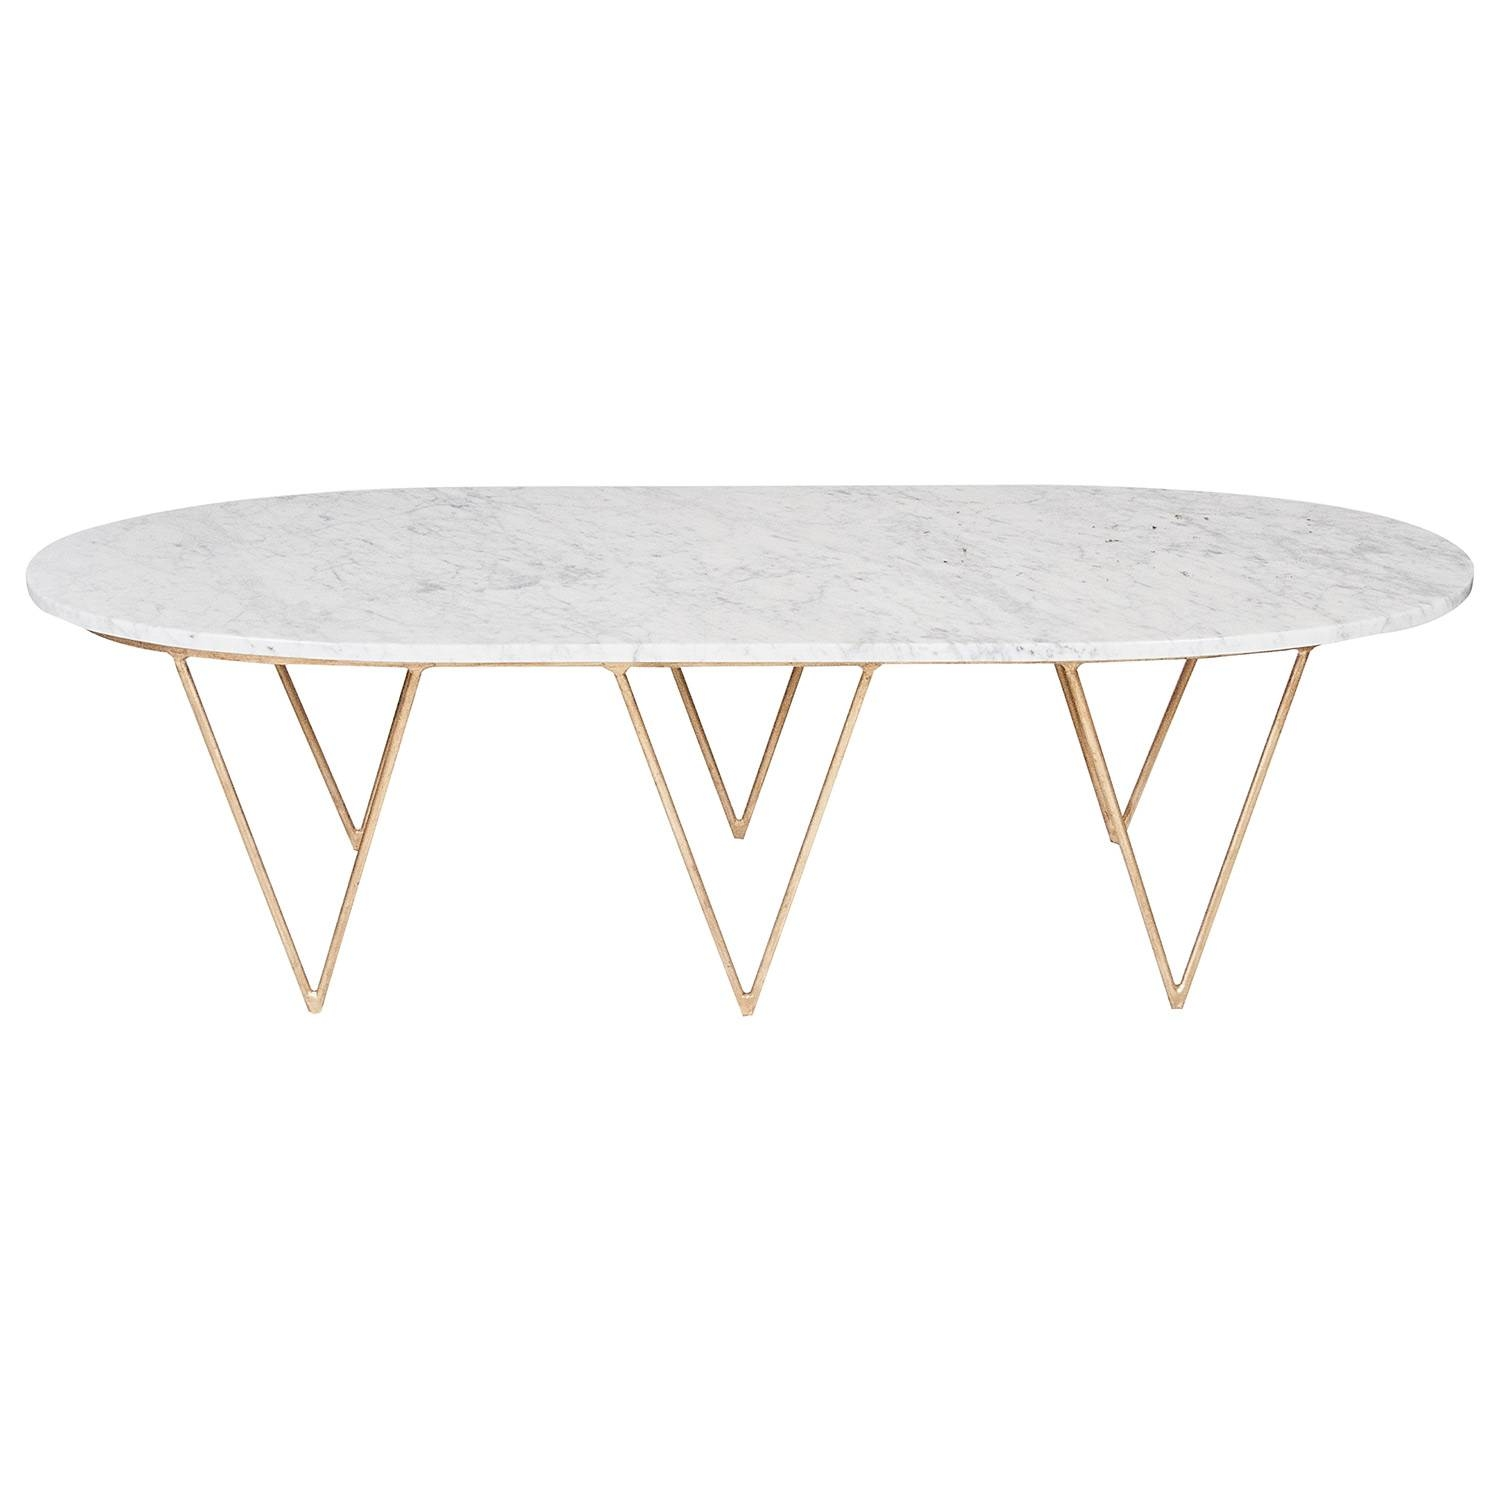 Interesting Oval Marble Coffee Table – Modern Oval Marble Coffee intended for Oblong Coffee Tables (Image 20 of 30)